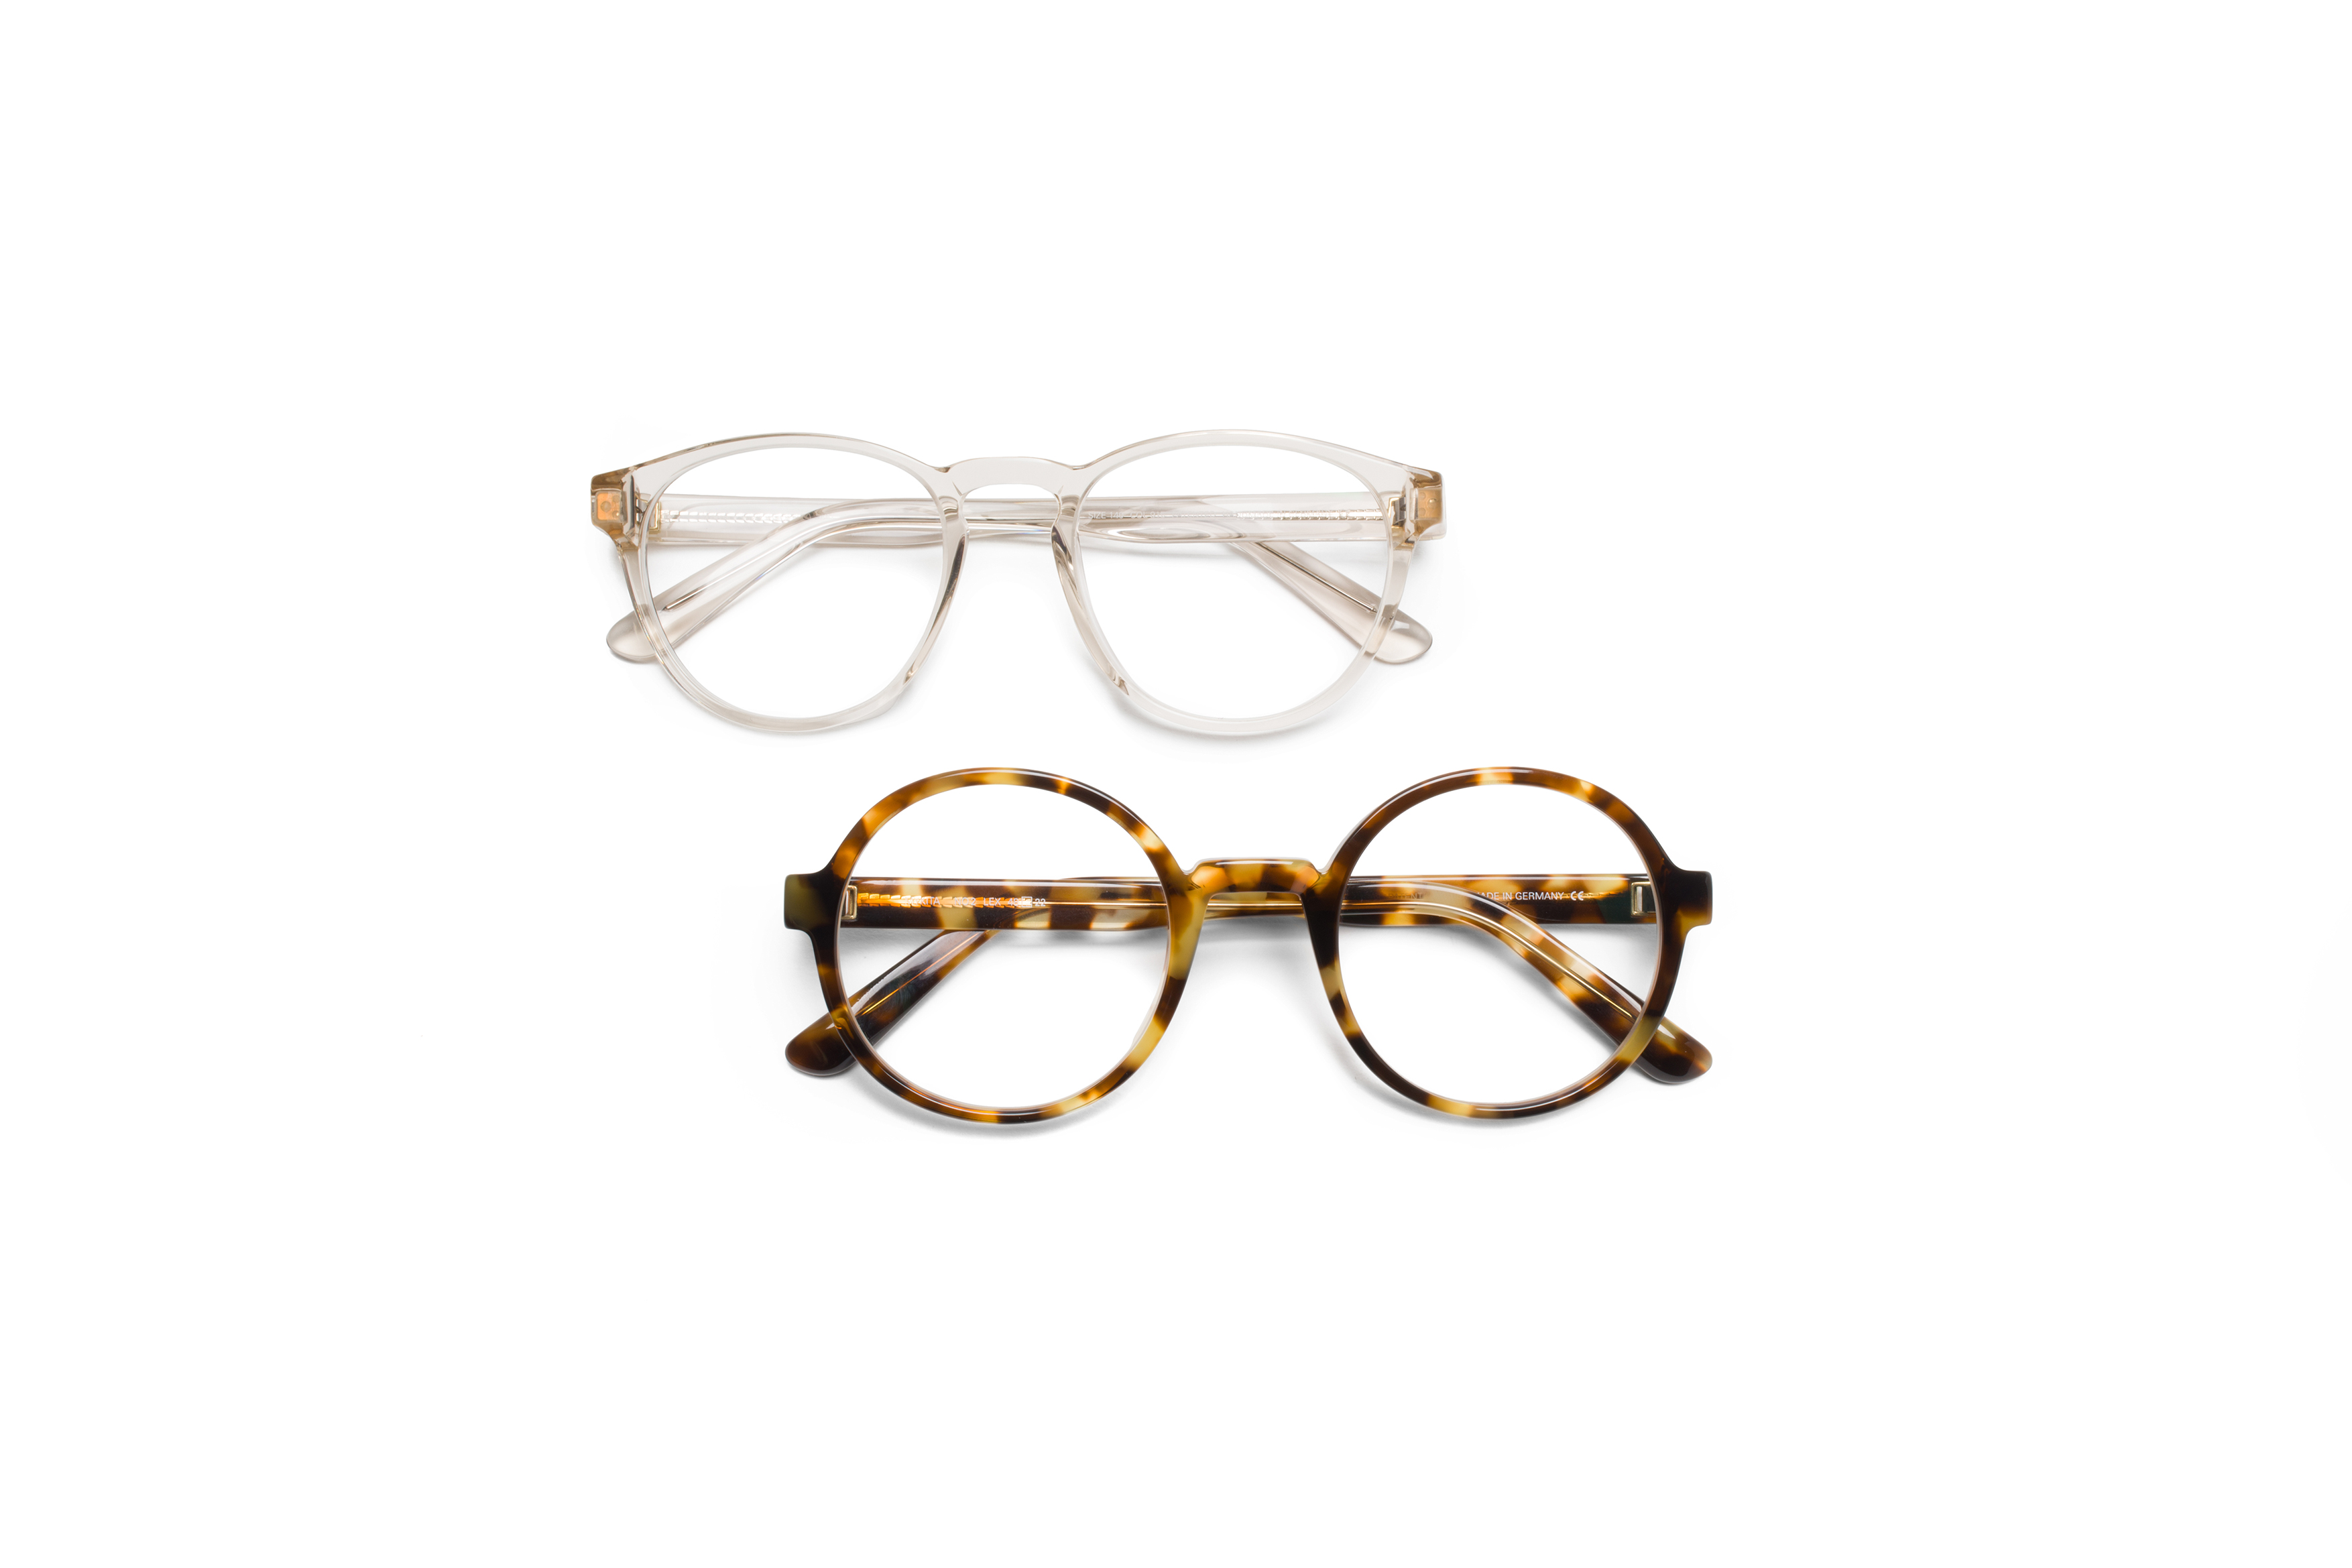 MYKITA No2 Rx Geoffrey Champagne Clear No2 Rx Lex Cocoa Sprinkles Clear Gs Tif